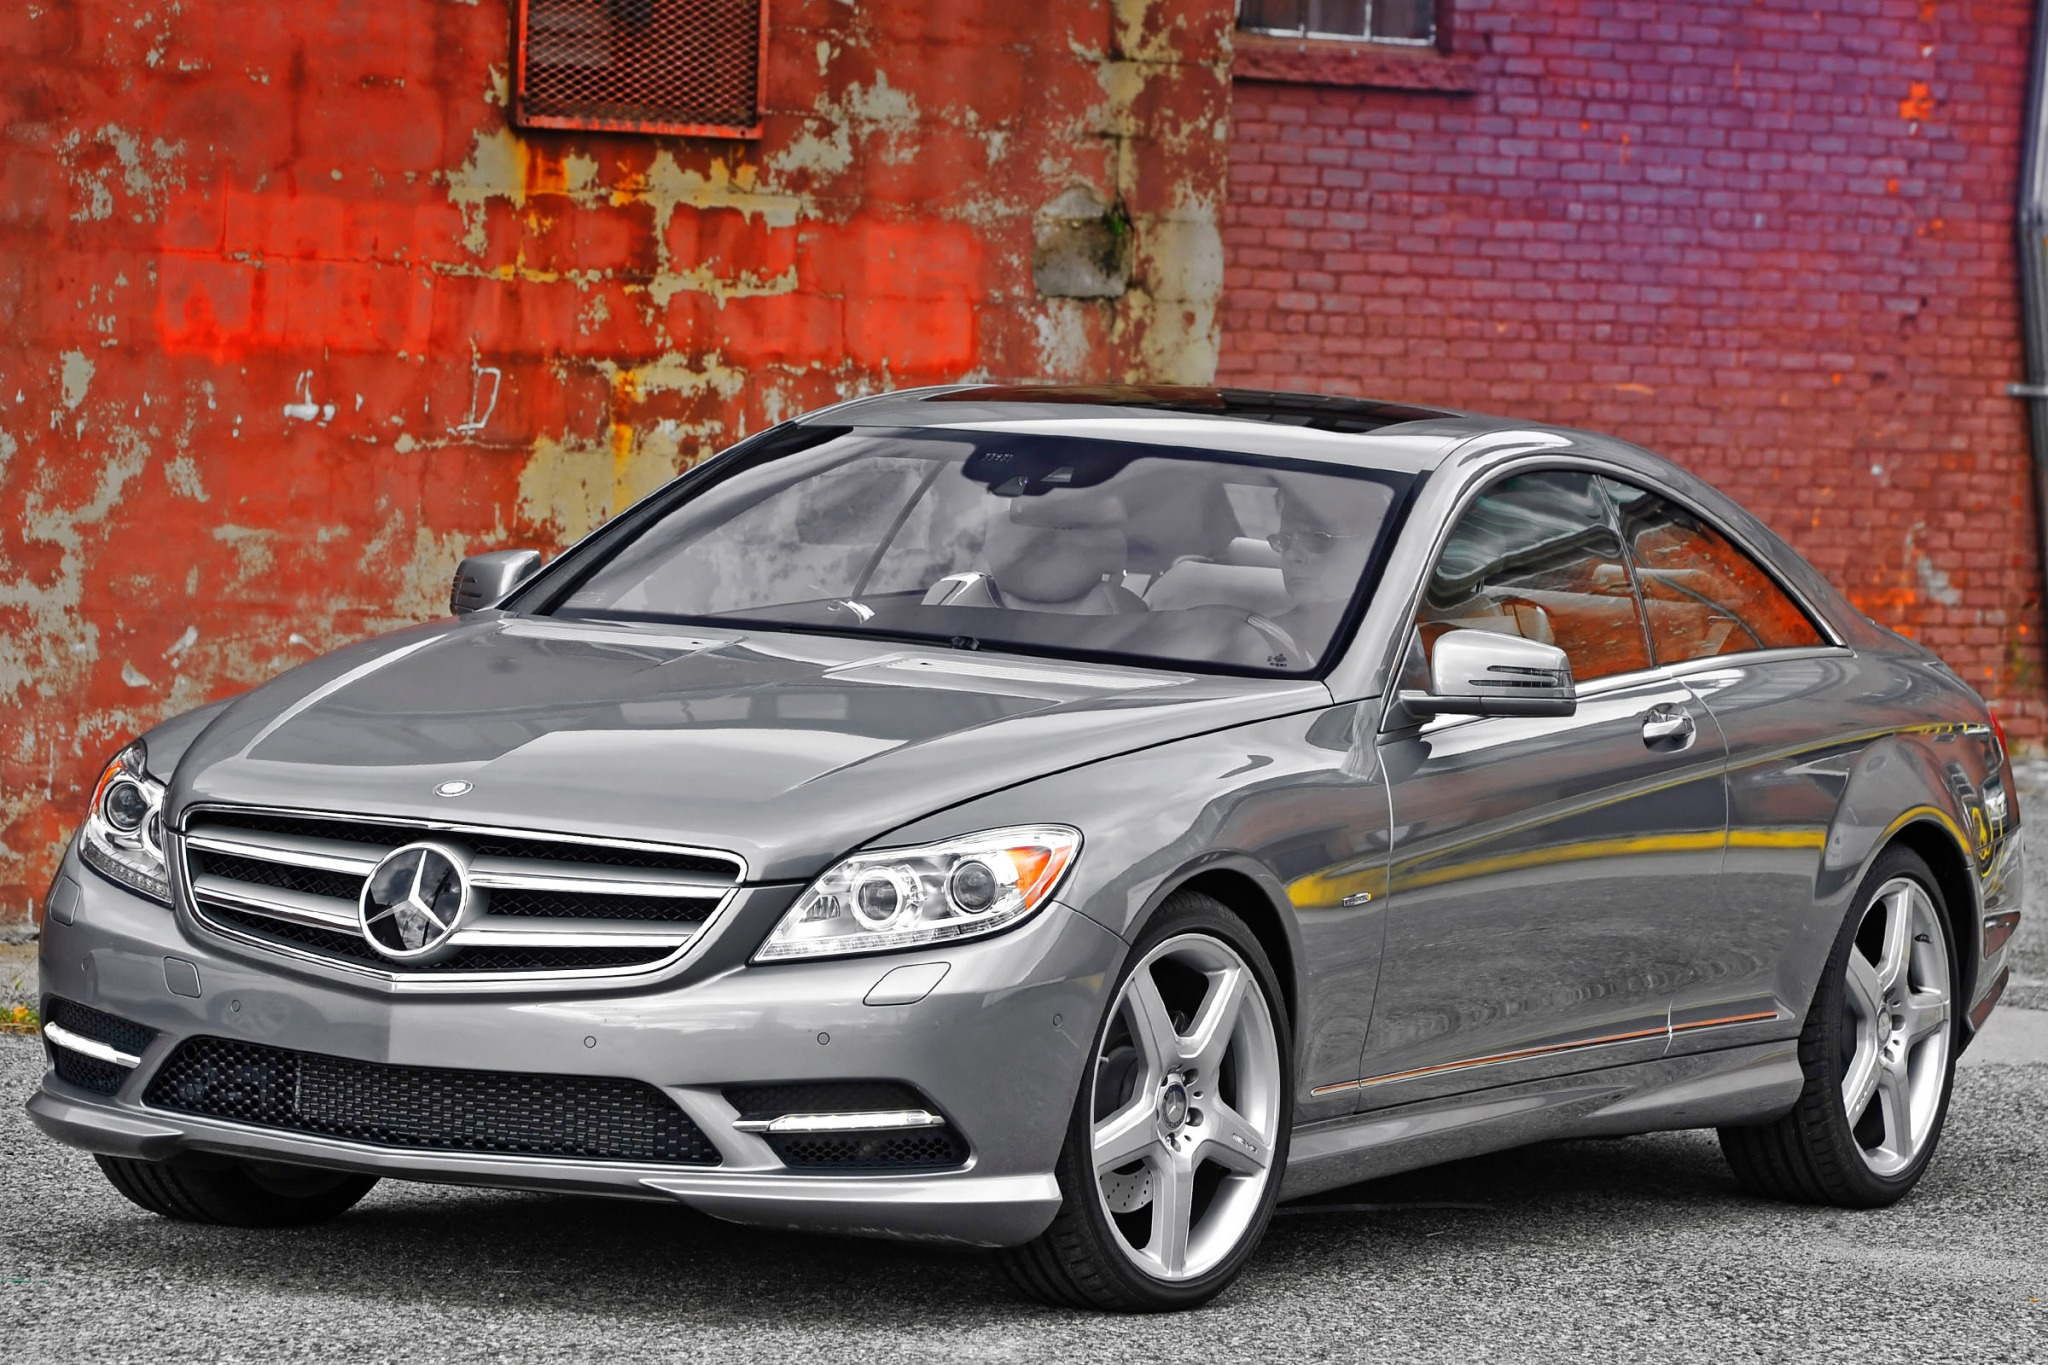 2012 mercedes benz cl class coupe cl550 4matic fq oem 5 2048